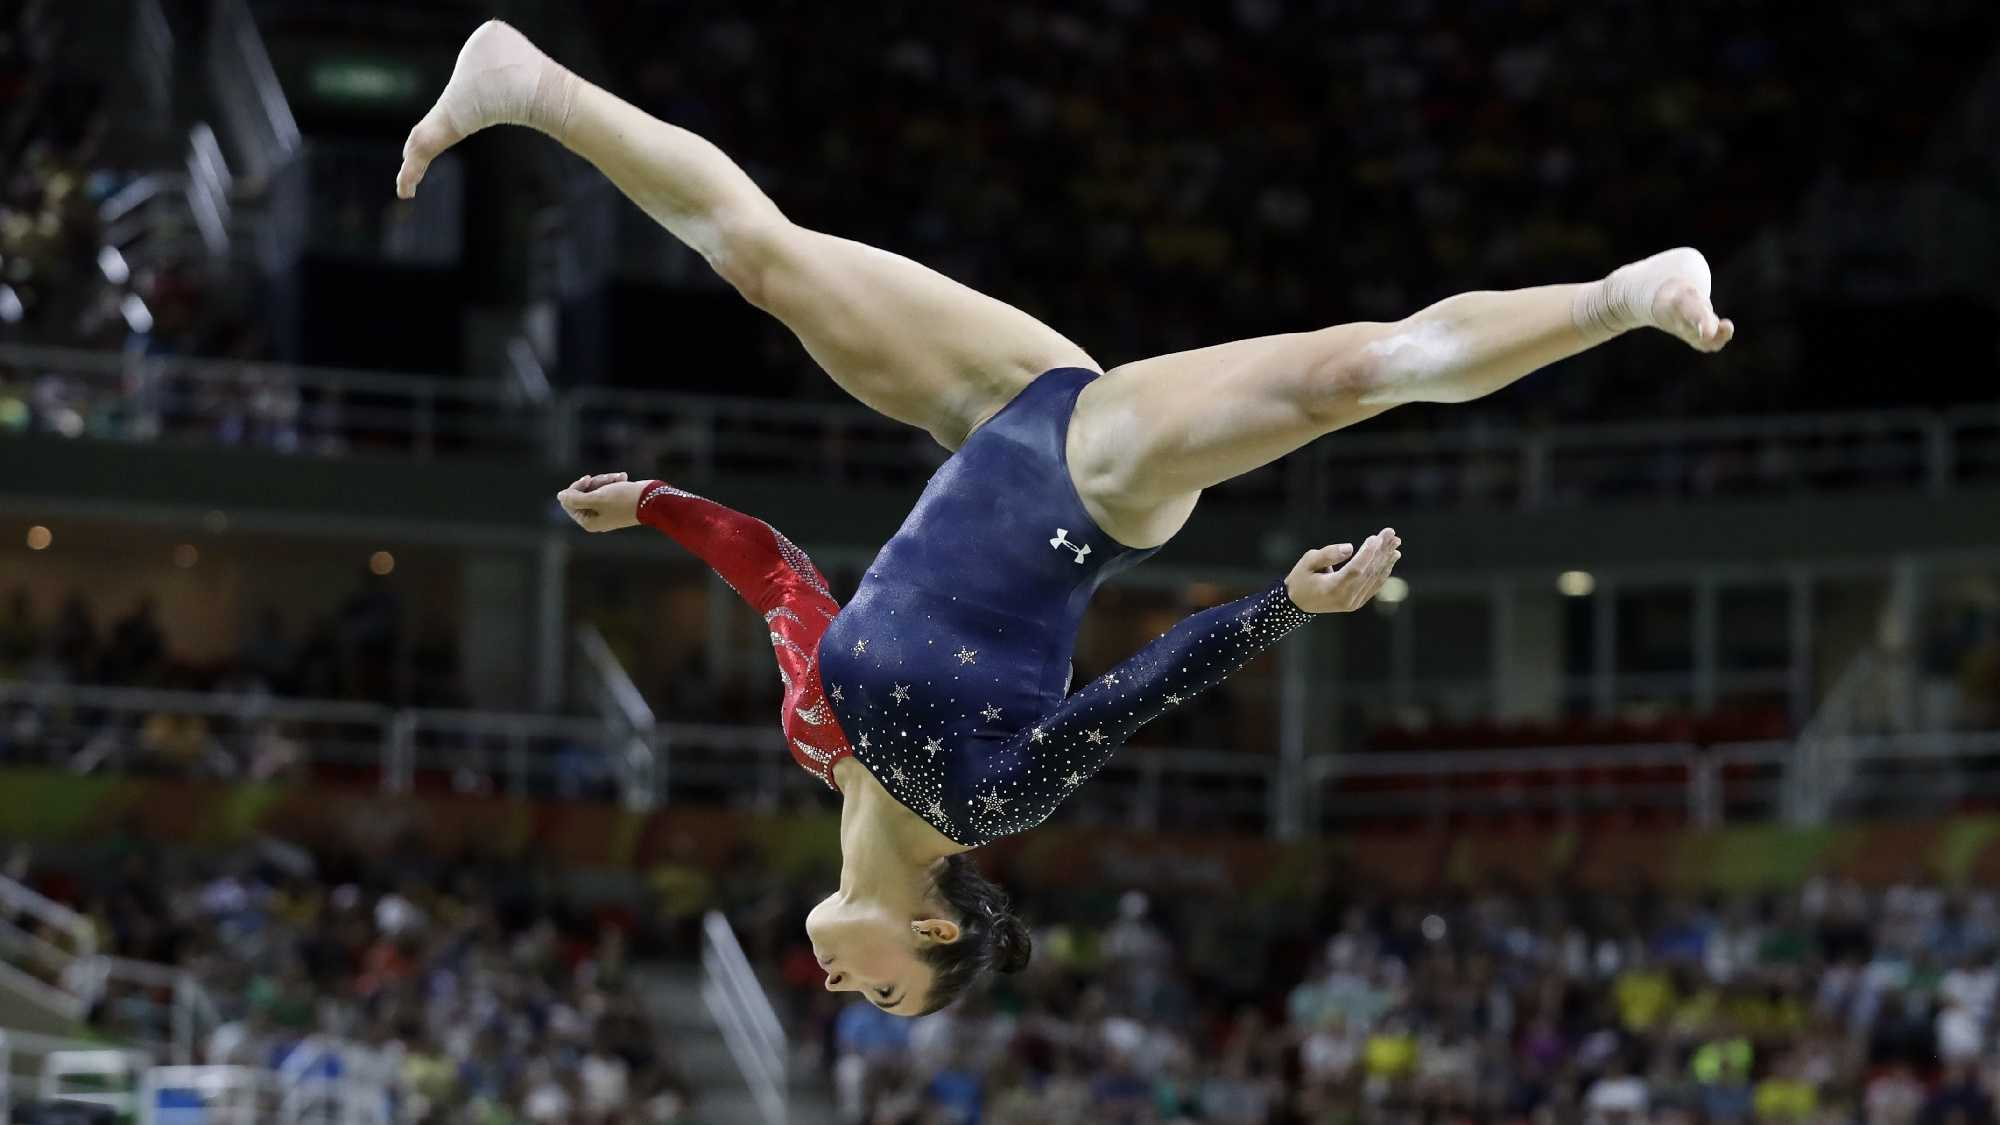 United States' Aly Raisman performs on the balance beam during the artistic gymnastics women's qualification at the 2016 Summer Olympics in Rio de Janeiro, Brazil, Sunday, Aug. 7, 2016.